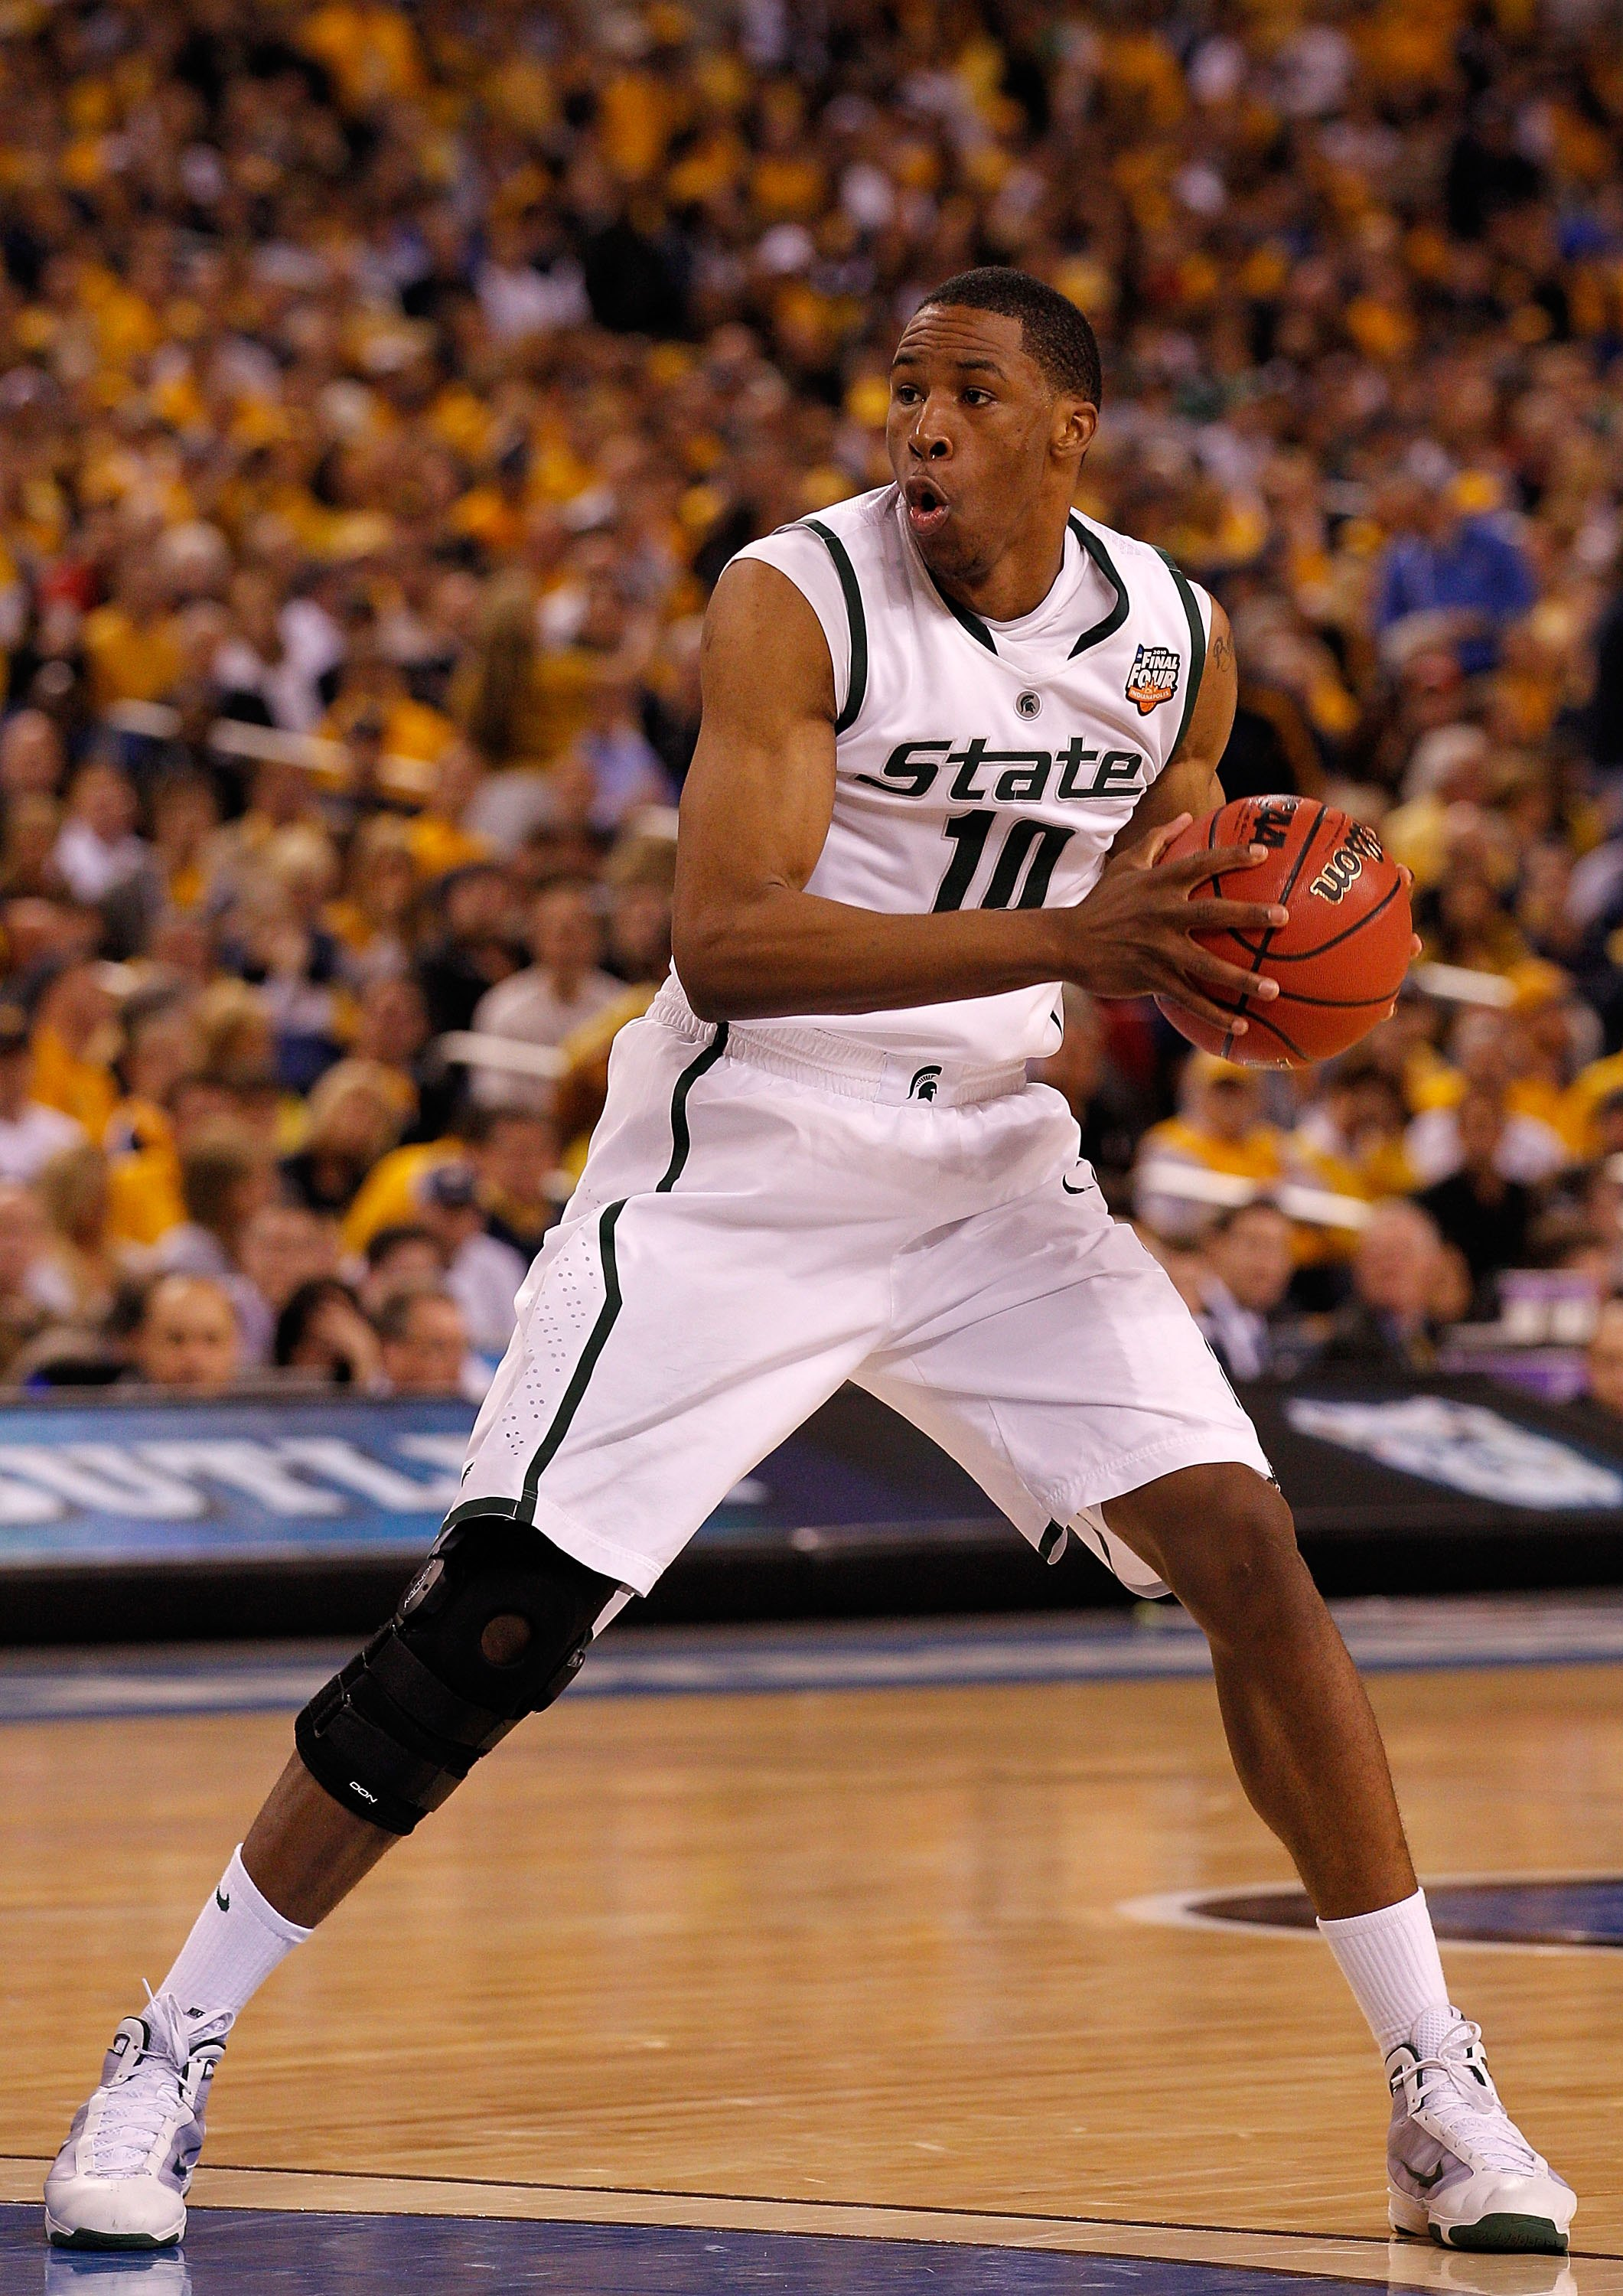 INDIANAPOLIS - APRIL 03:  Delvon Roe #10 of the Michigan State Spartans with the ball against the Butler Bulldogs during the National Semifinal game of the 2010 NCAA Division I Men's Basketball Championship on April 3, 2010 in Indianapolis, Indiana.  (Pho